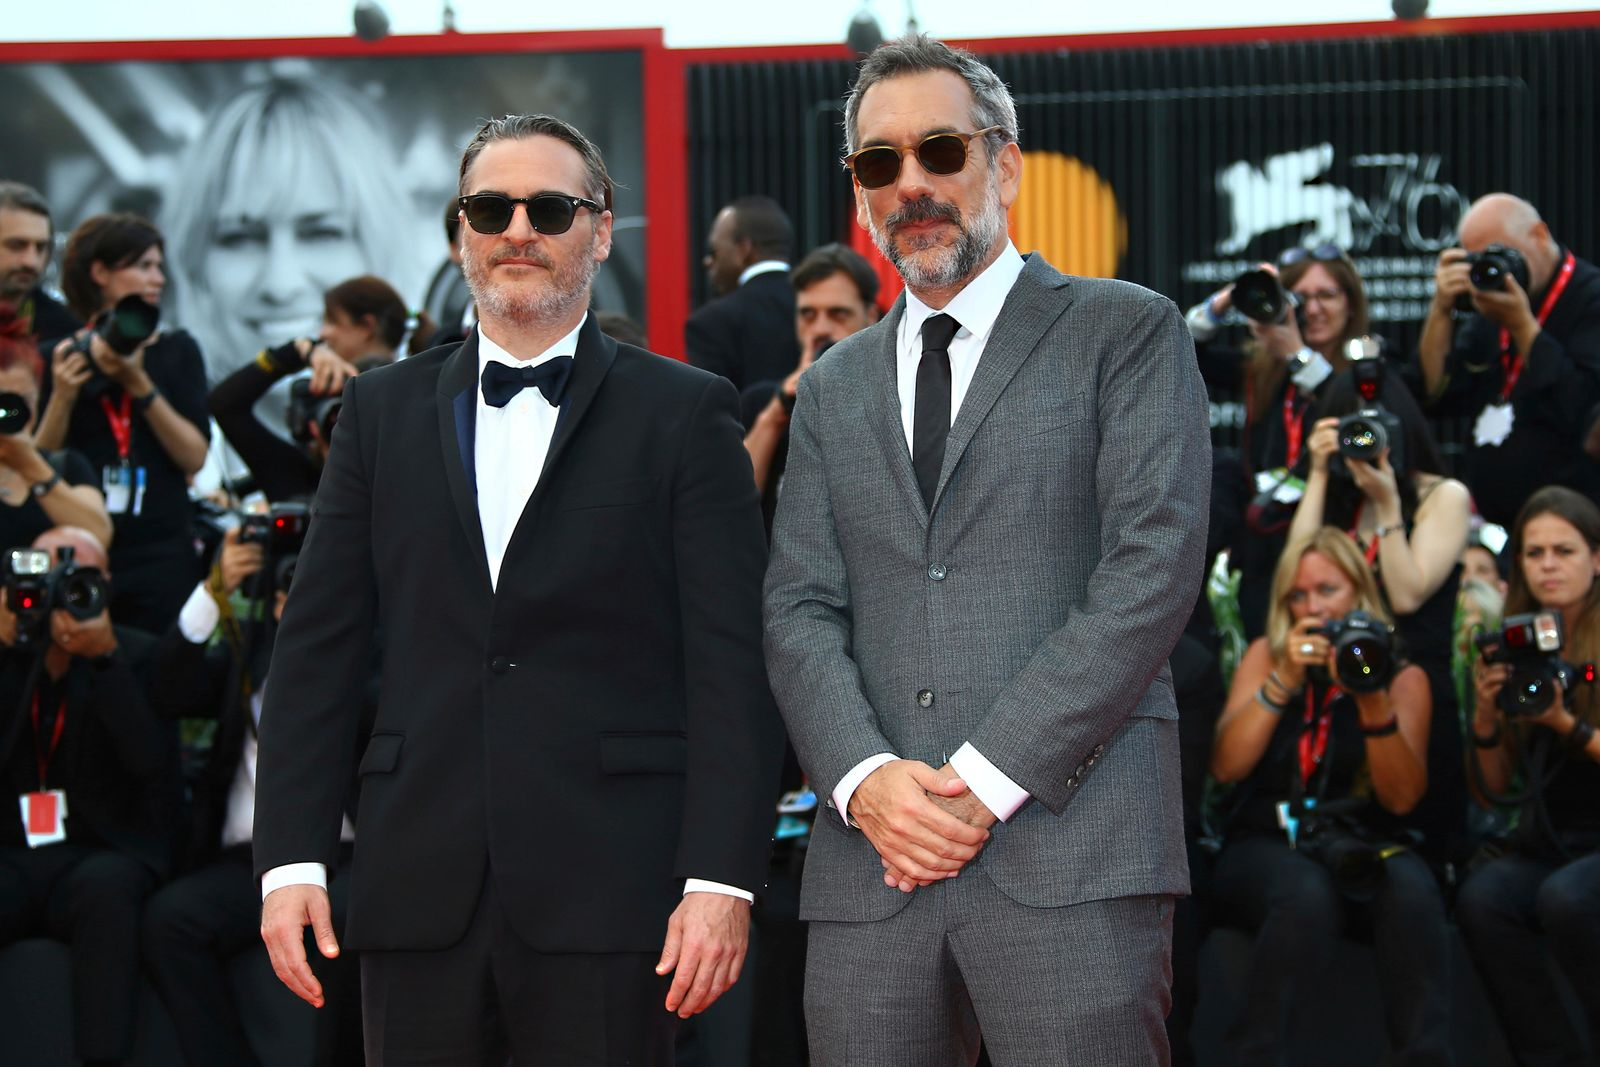 Actor Joaquin Phoenix, left, and Todd Phillips pose for photographers upon arrival at closing ceremony of the 76th edition of the Venice Film Festival, Venice, Italy, Saturday, Sept. 7, 2019. (Photo by Joel C Ryan/Invision/AP)